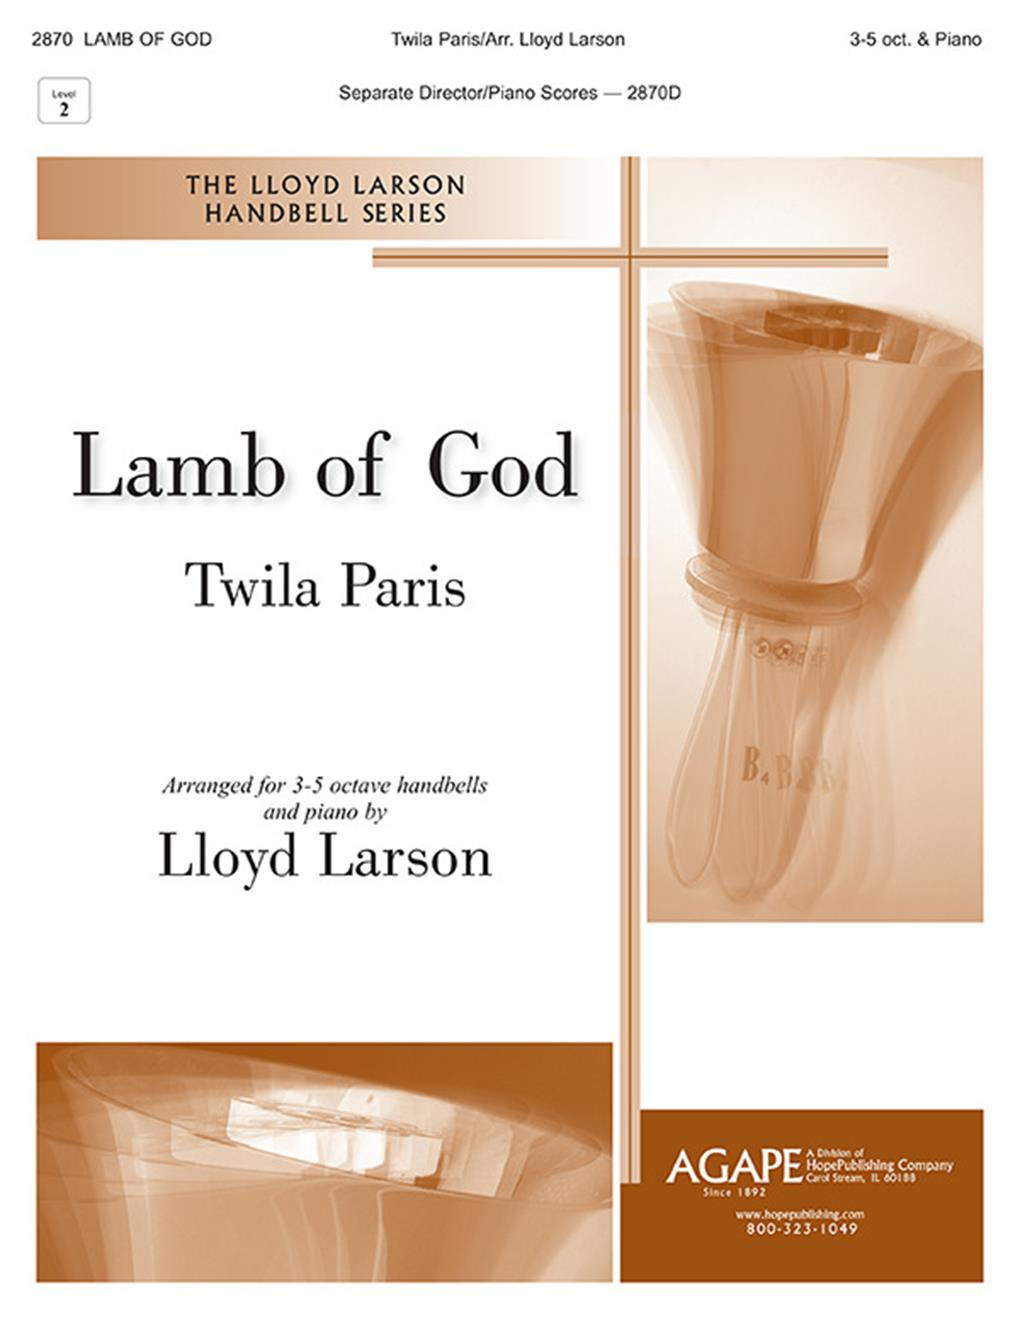 Lamb of God - 3-5 oct. Cover Image